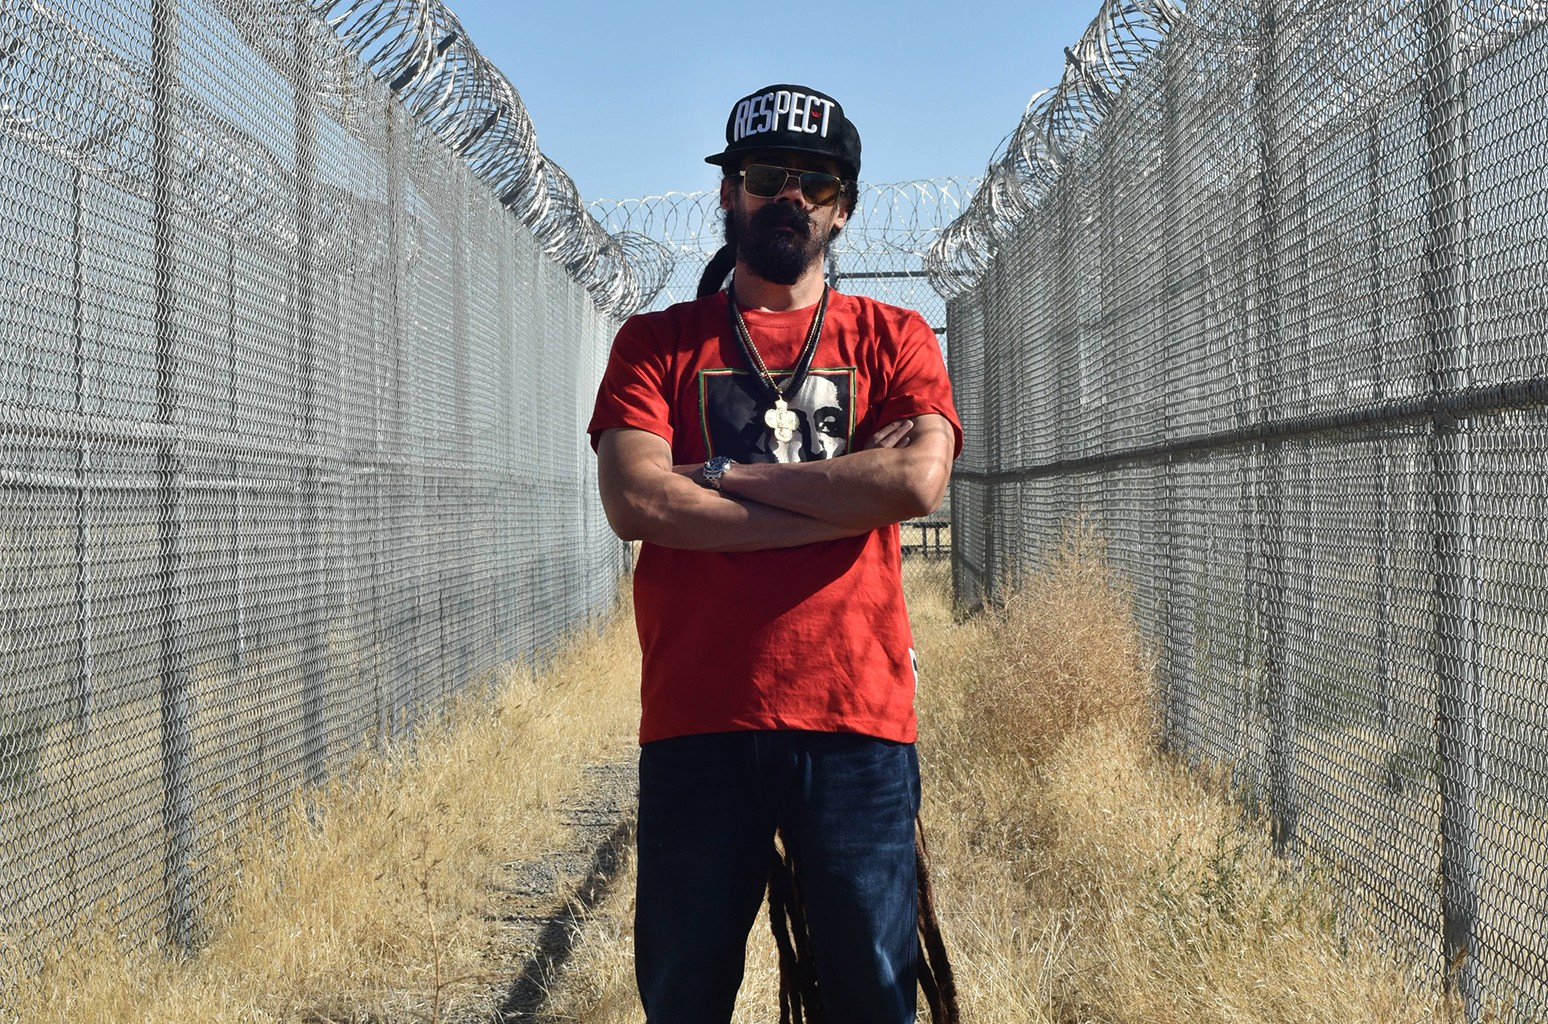 Damian Marley on Sept. 26, 2016 at the former Claremont Custody Center in Coalinga, CA, which is being converted into a cannabis grow facility.